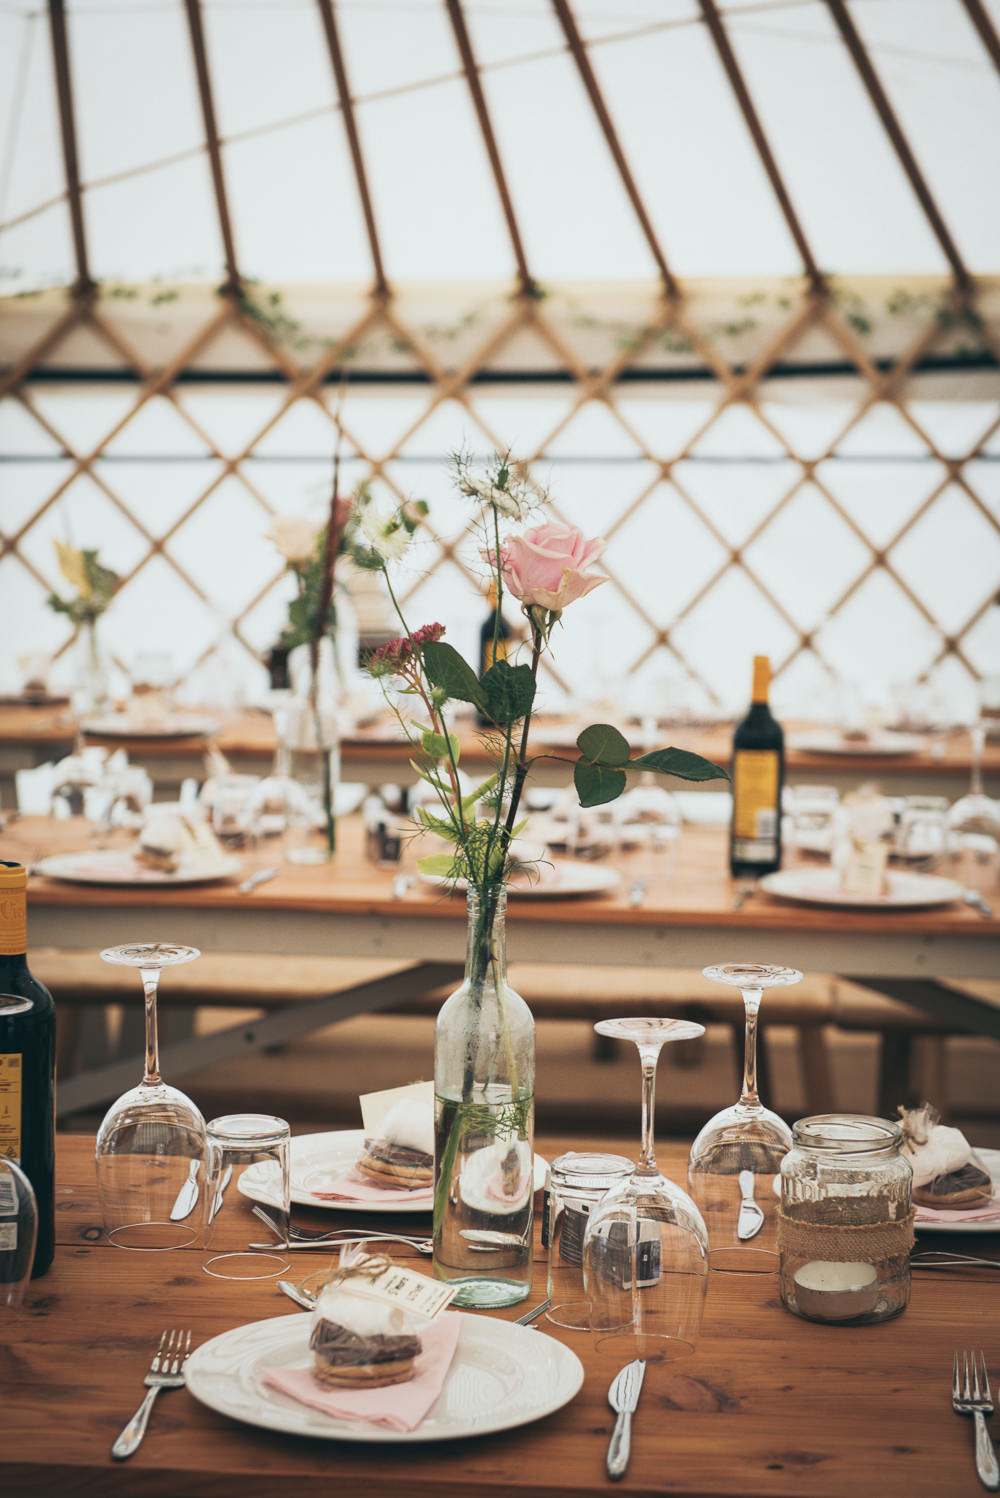 Rustic Wooden Tables Decor Decoration Flowers Bottles Fron Farm Yurt Retreat Wedding Cat Arwel Photography